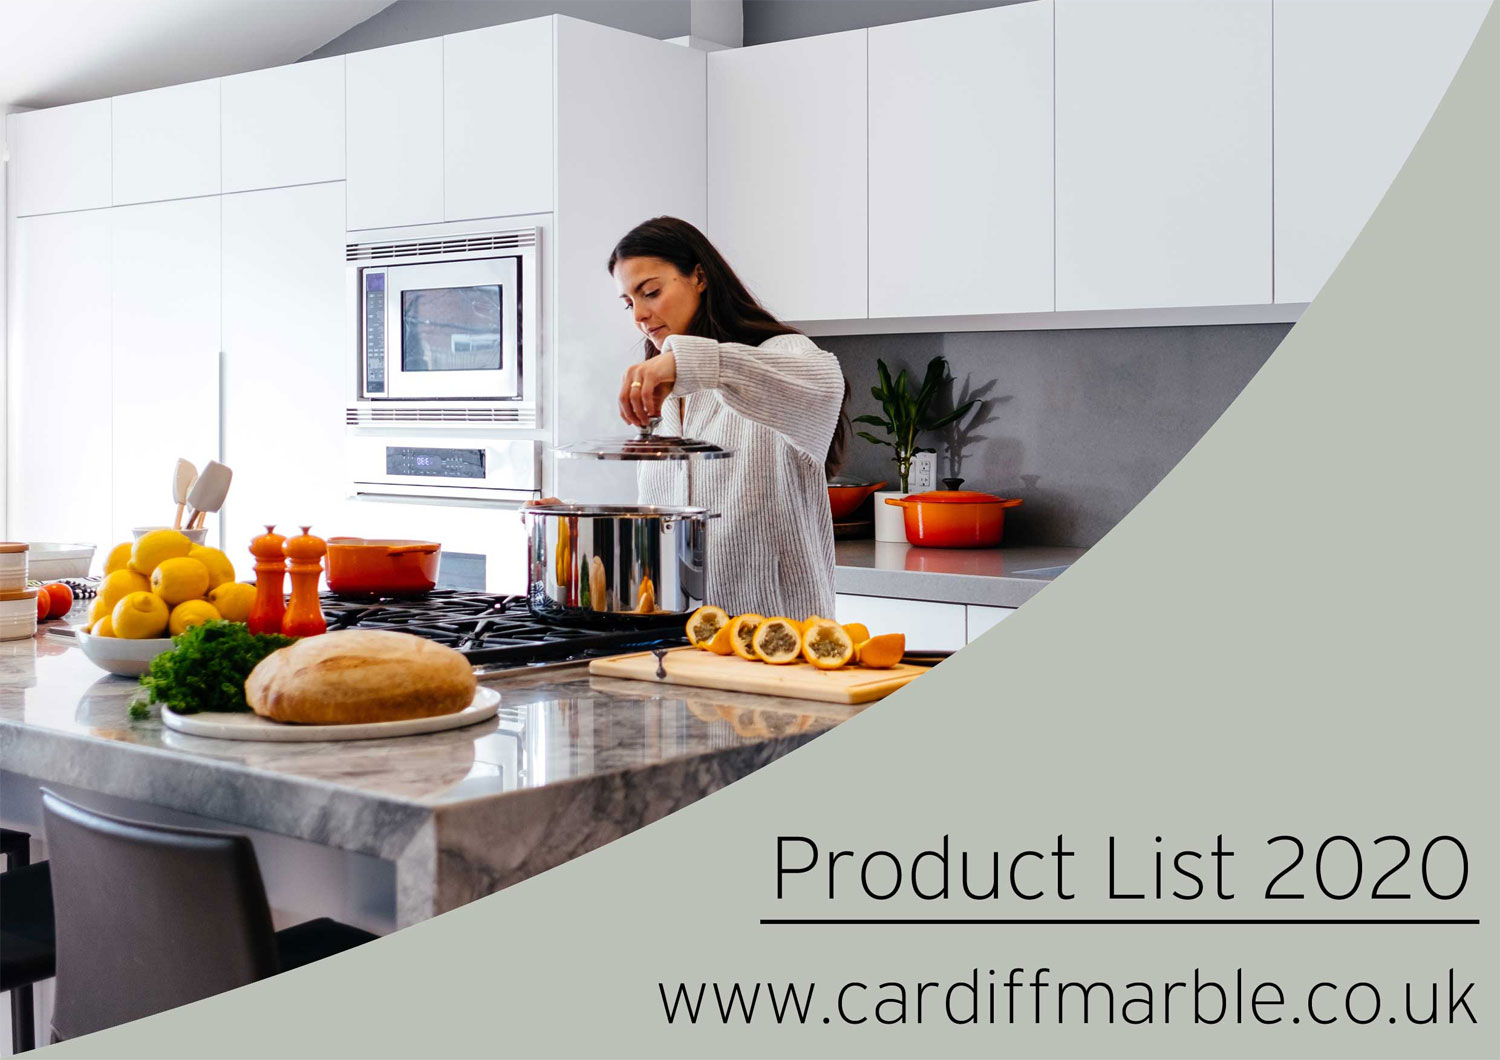 WEBSITE-2-Product-List-_-Front_2020